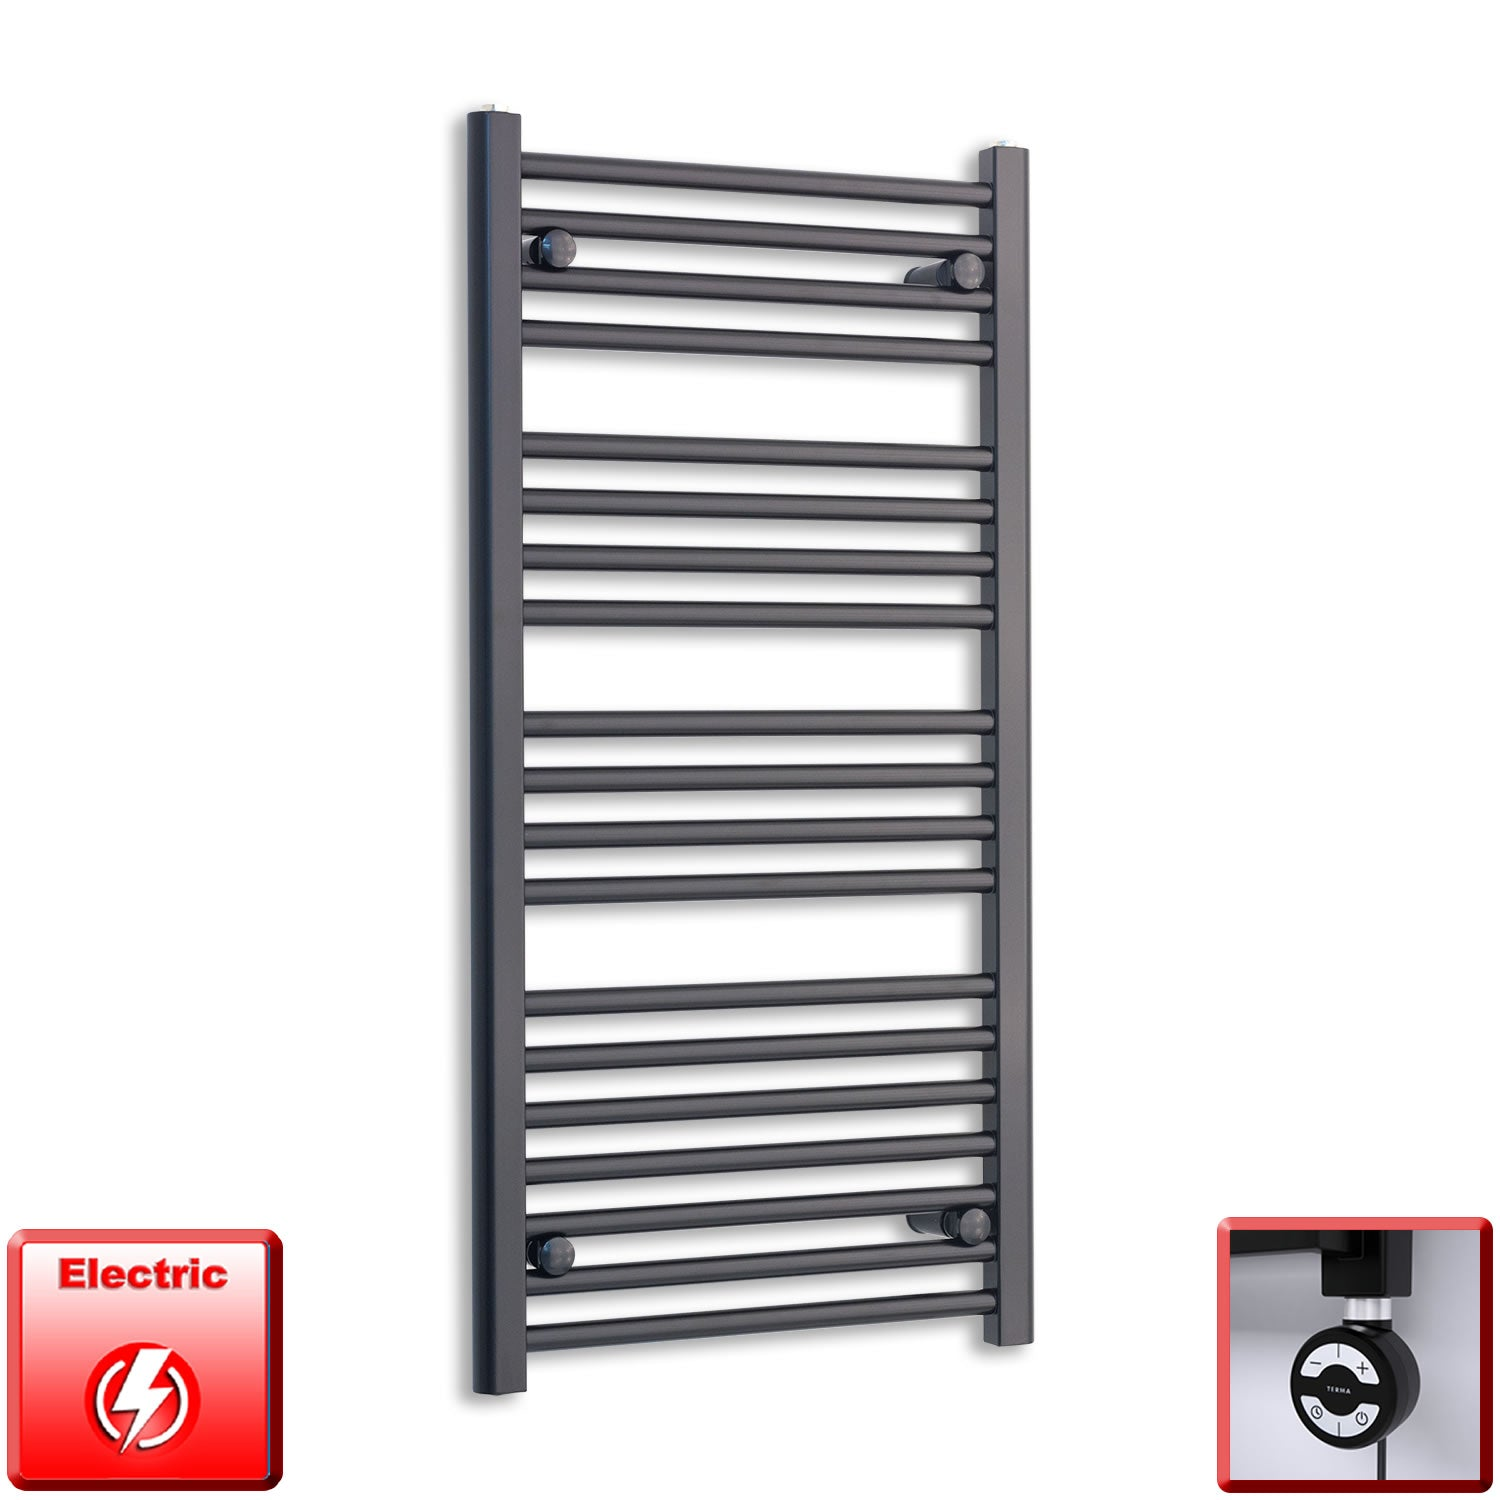 600mm Wide 1000mm High Pre-Filled Black Electric Towel Rail Radiator With Thermostatic MOA Element